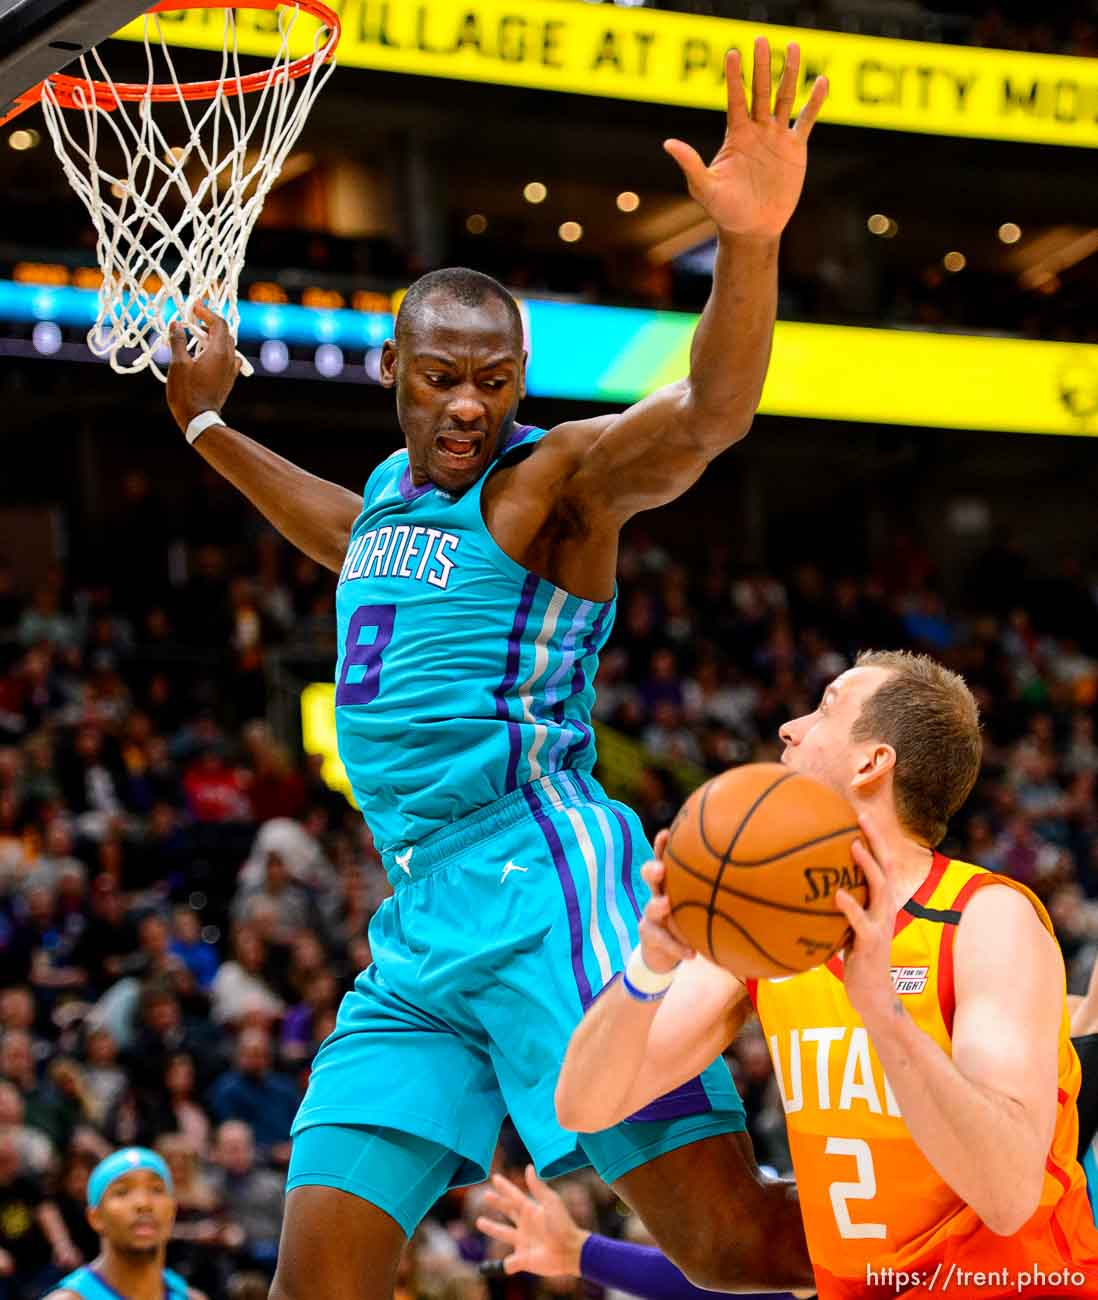 (Trent Nelson | The Salt Lake Tribune) Utah Jazz forward Joe Ingles (2) defended by Charlotte Hornets center Bismack Biyombo (8) as the Utah Jazz host the Charlotte Hornets, NBA basketball in Salt Lake City on Friday, Jan. 10, 2020.